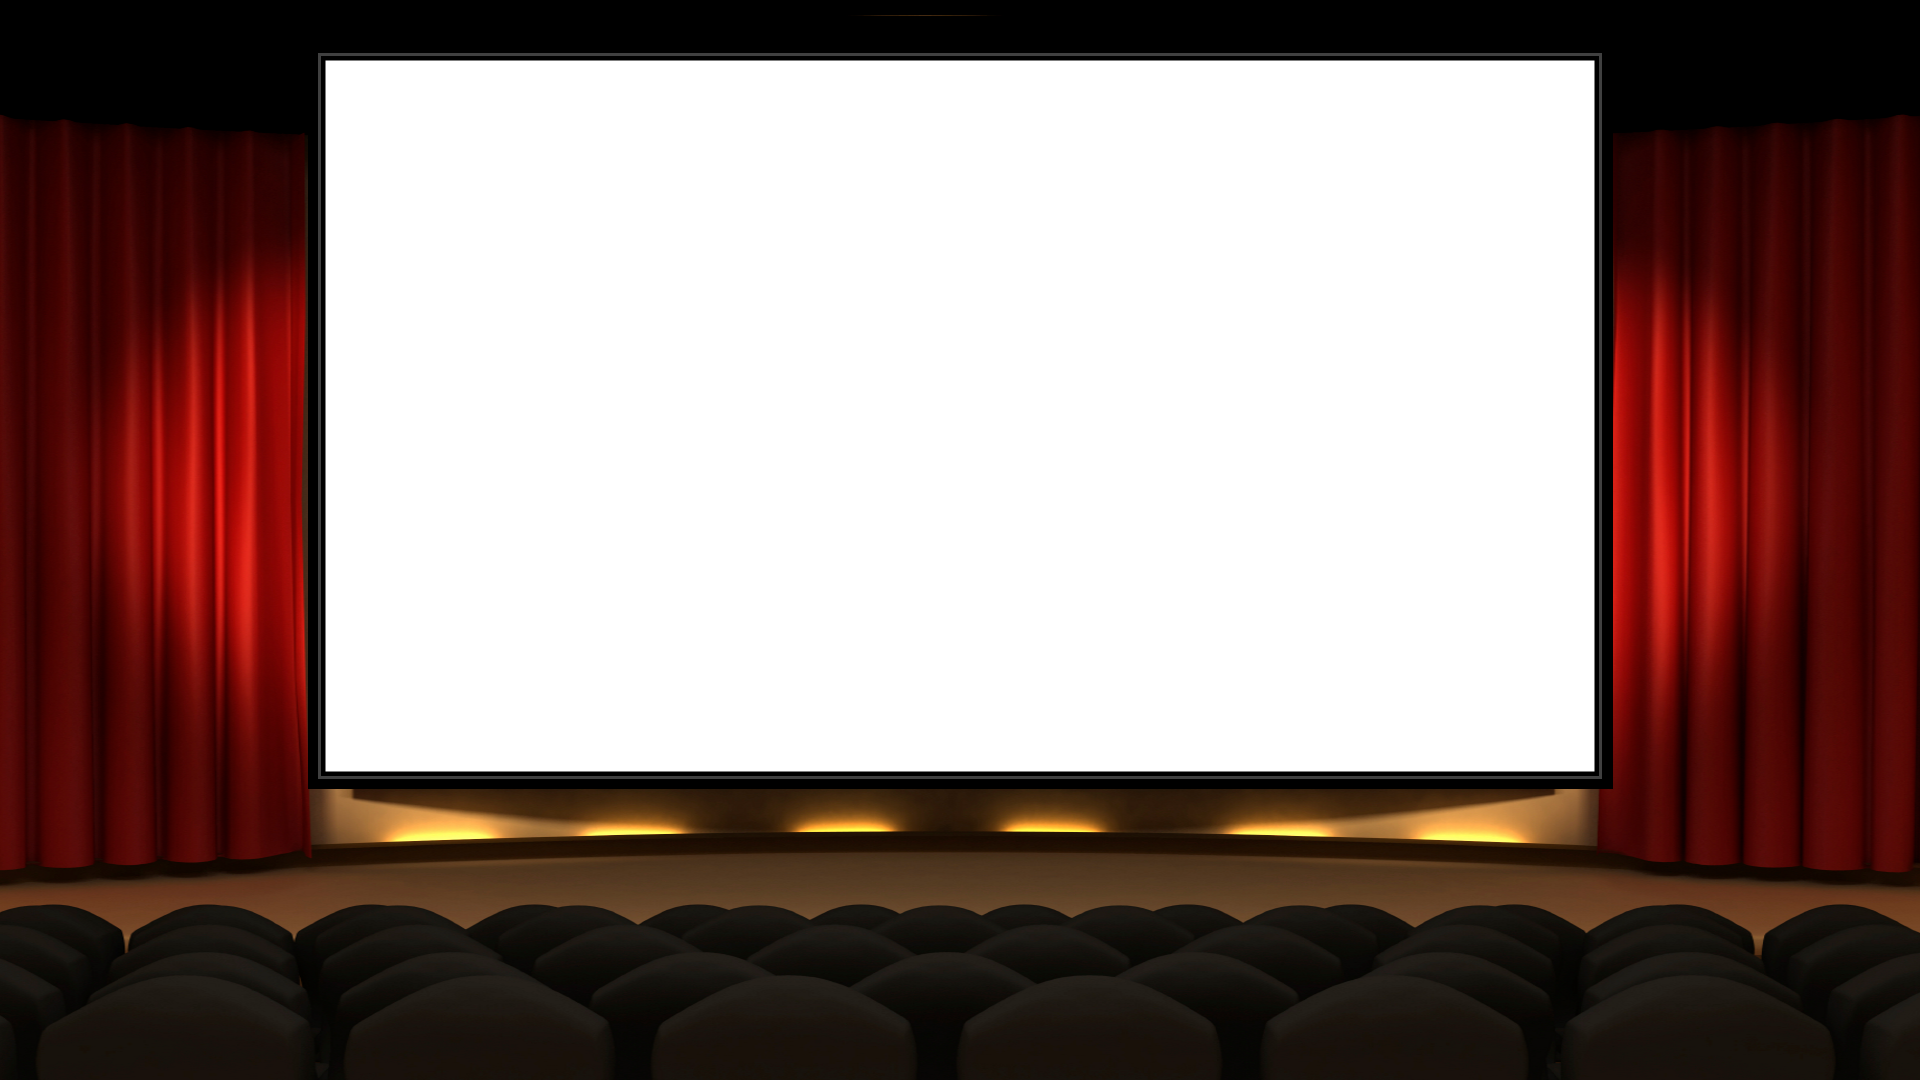 Theatre png hd transparent. Movie clipart movie theater